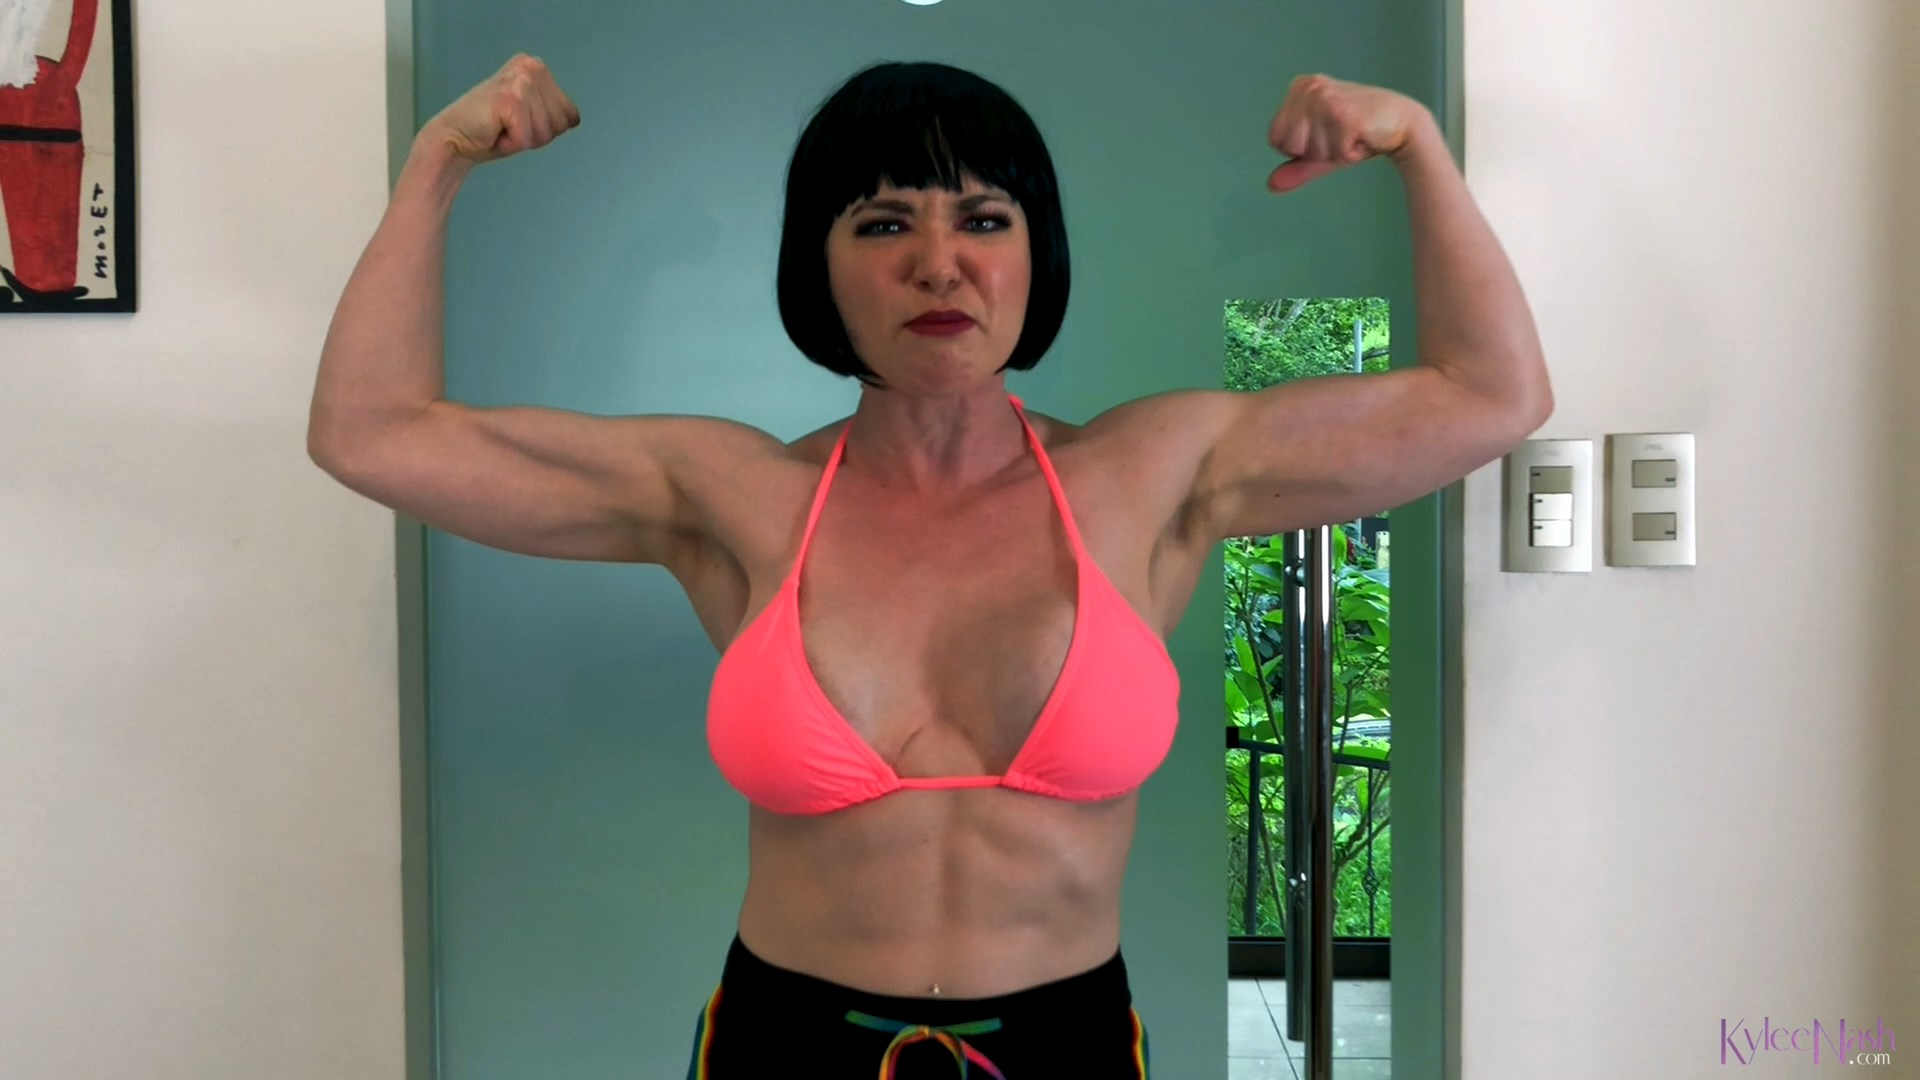 Kylee Nash - Fit Mom Fat Shames You